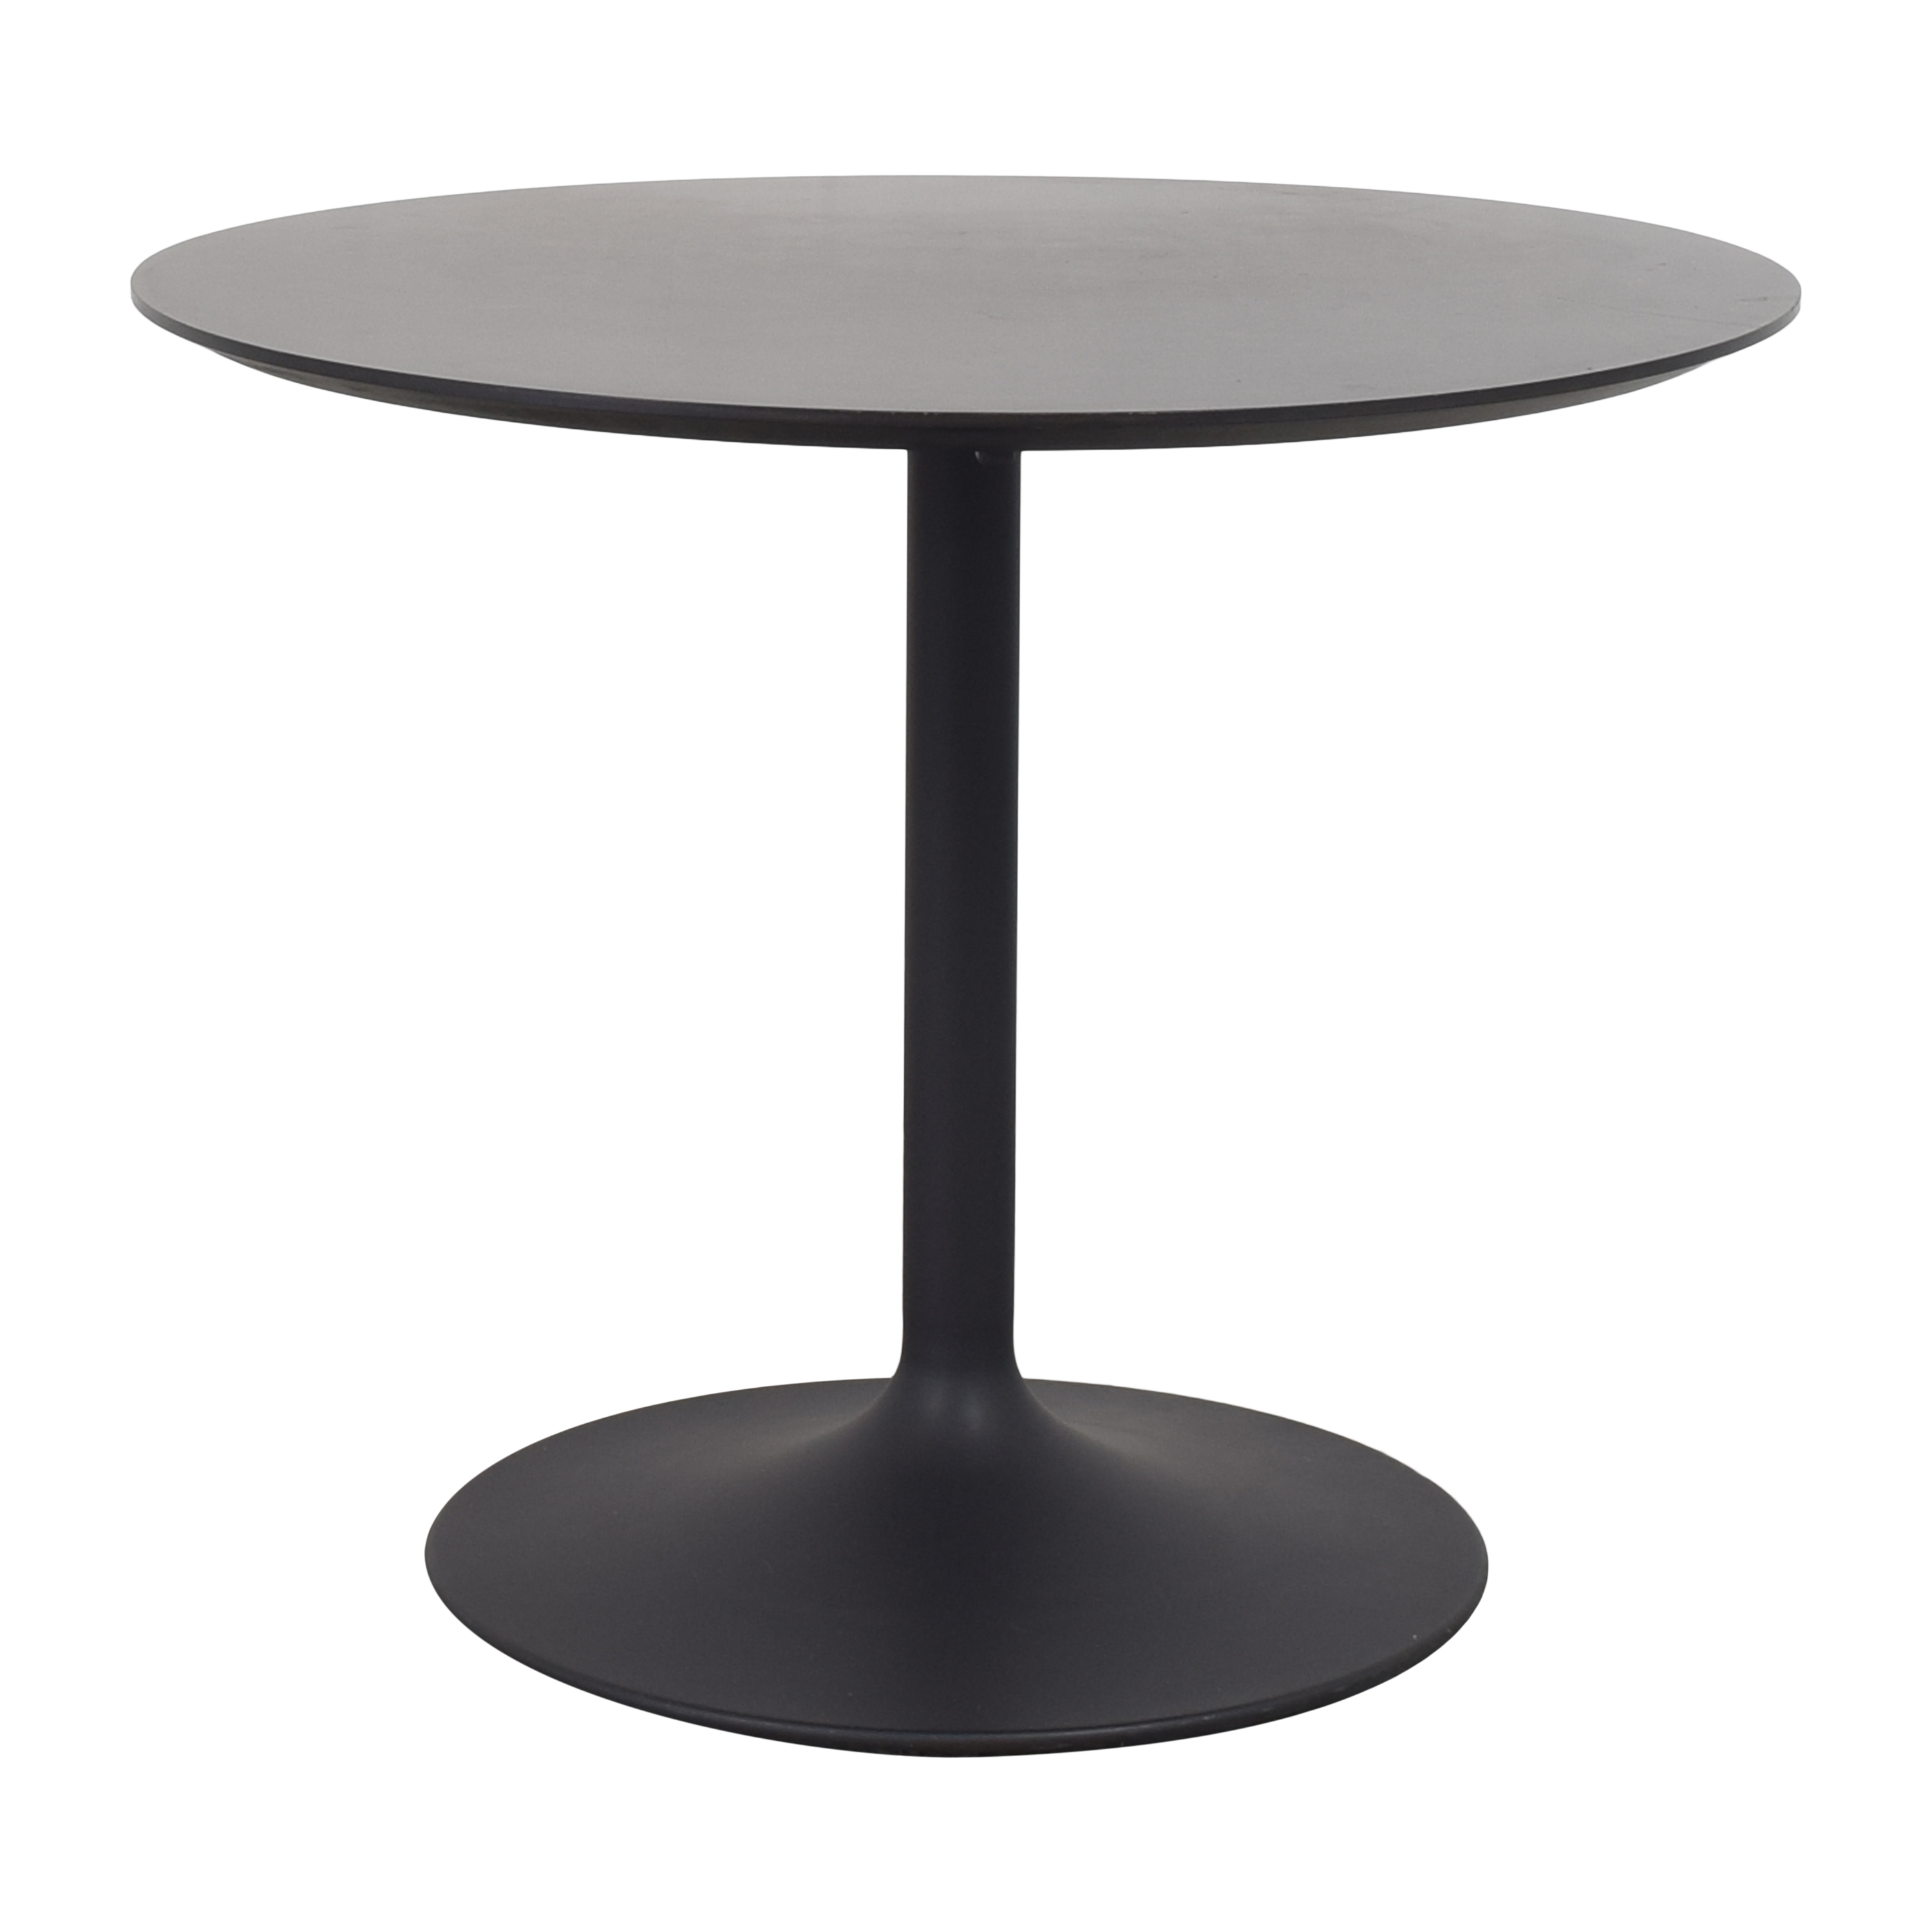 Room & Board Aria Round Dining Table Room & Board